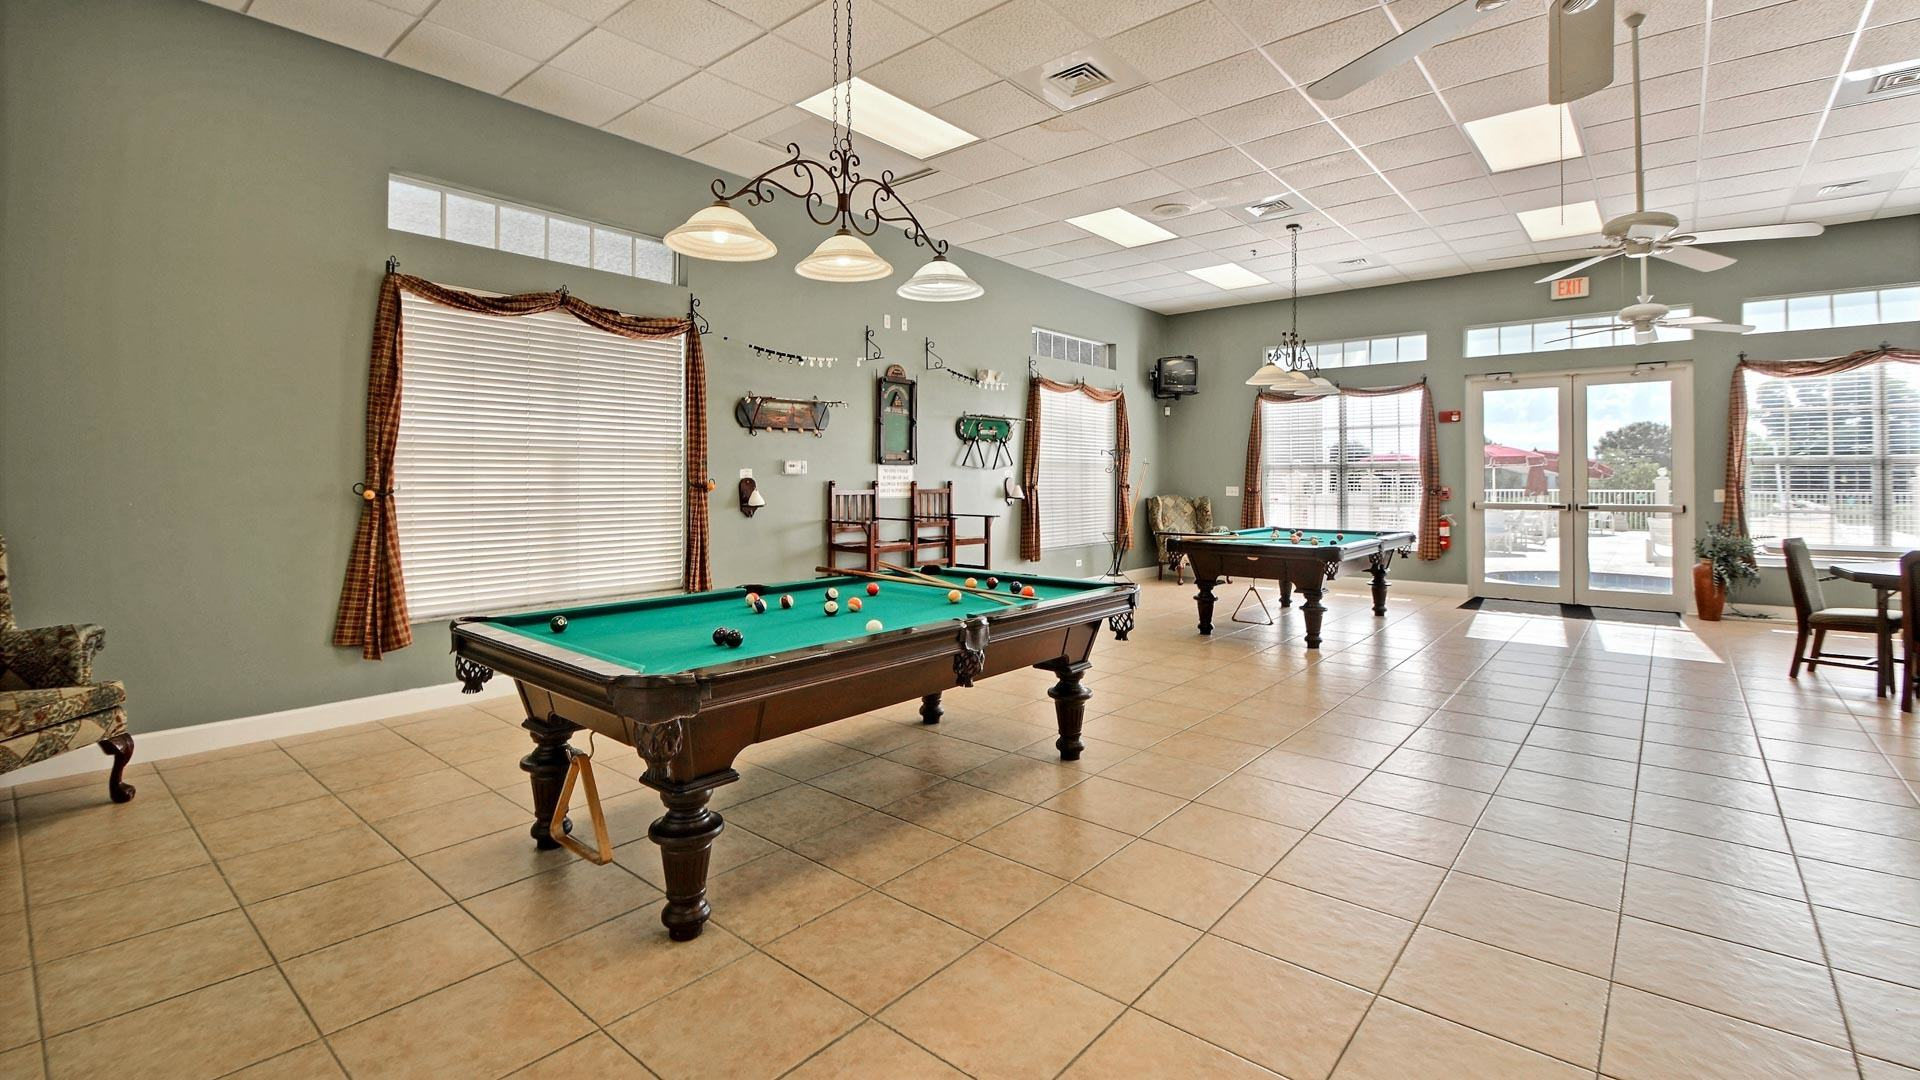 Savanna Club 55+ Manufactured Homes Community Game Room in St. Lucie, FL